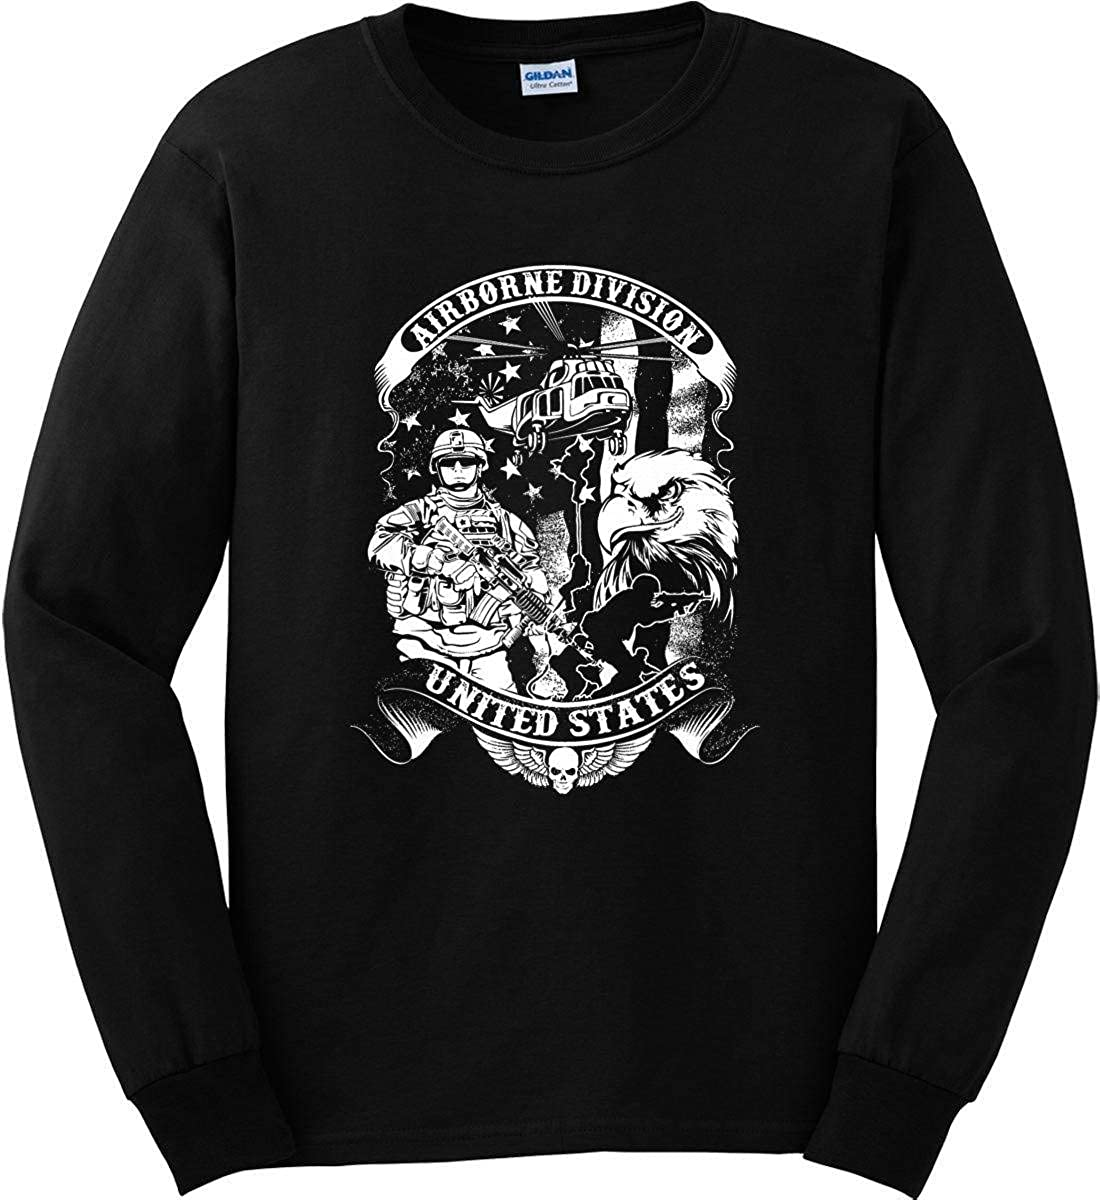 Sons Of Liberty Airborne Division USA Long Sleeve Shirt